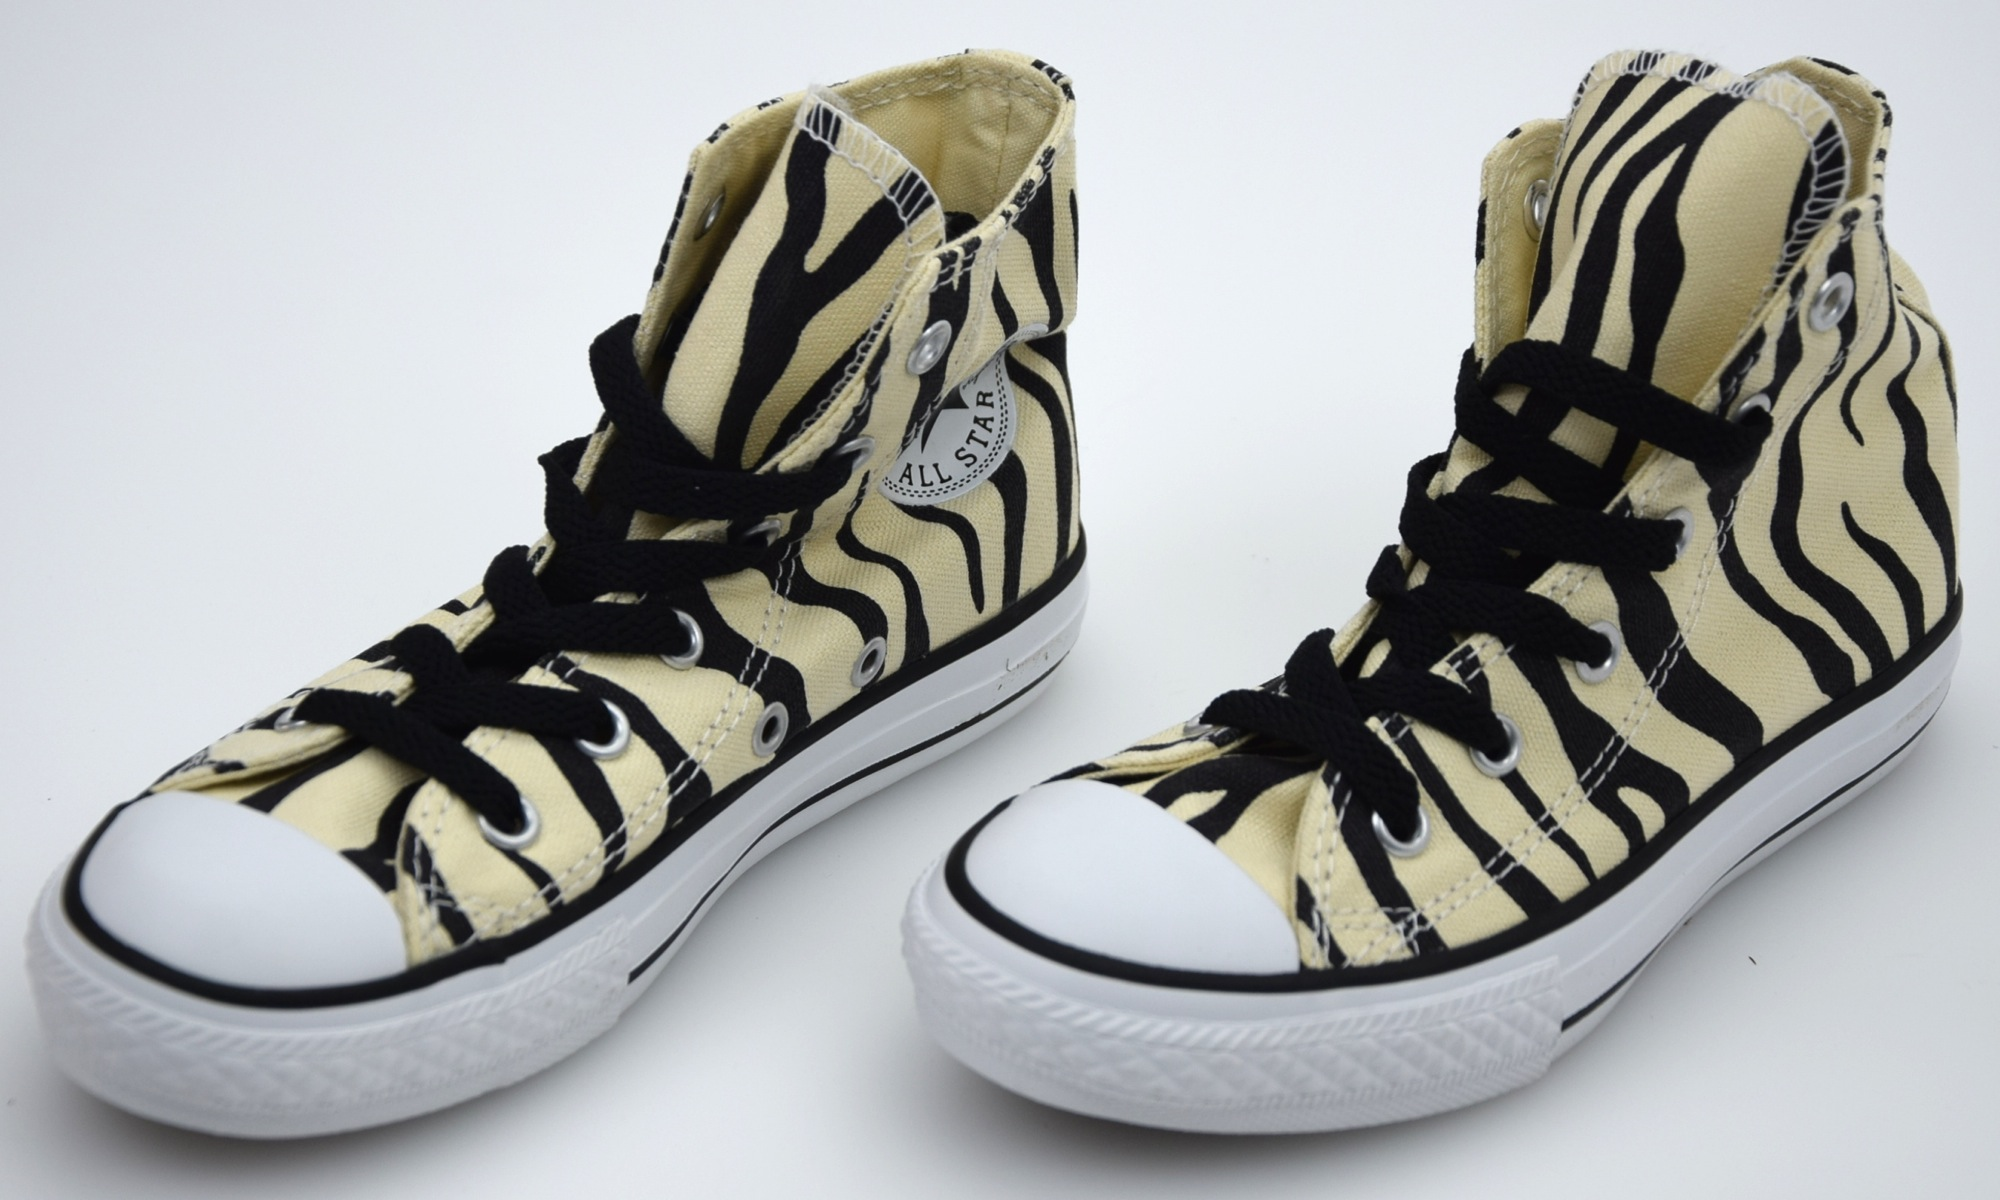 891c4c723e Details about CONVERSE ALL STAR JUNIOR GIRL WOMAN CASUAL SNEAKER SHOES  CANVAS CODE 642875C